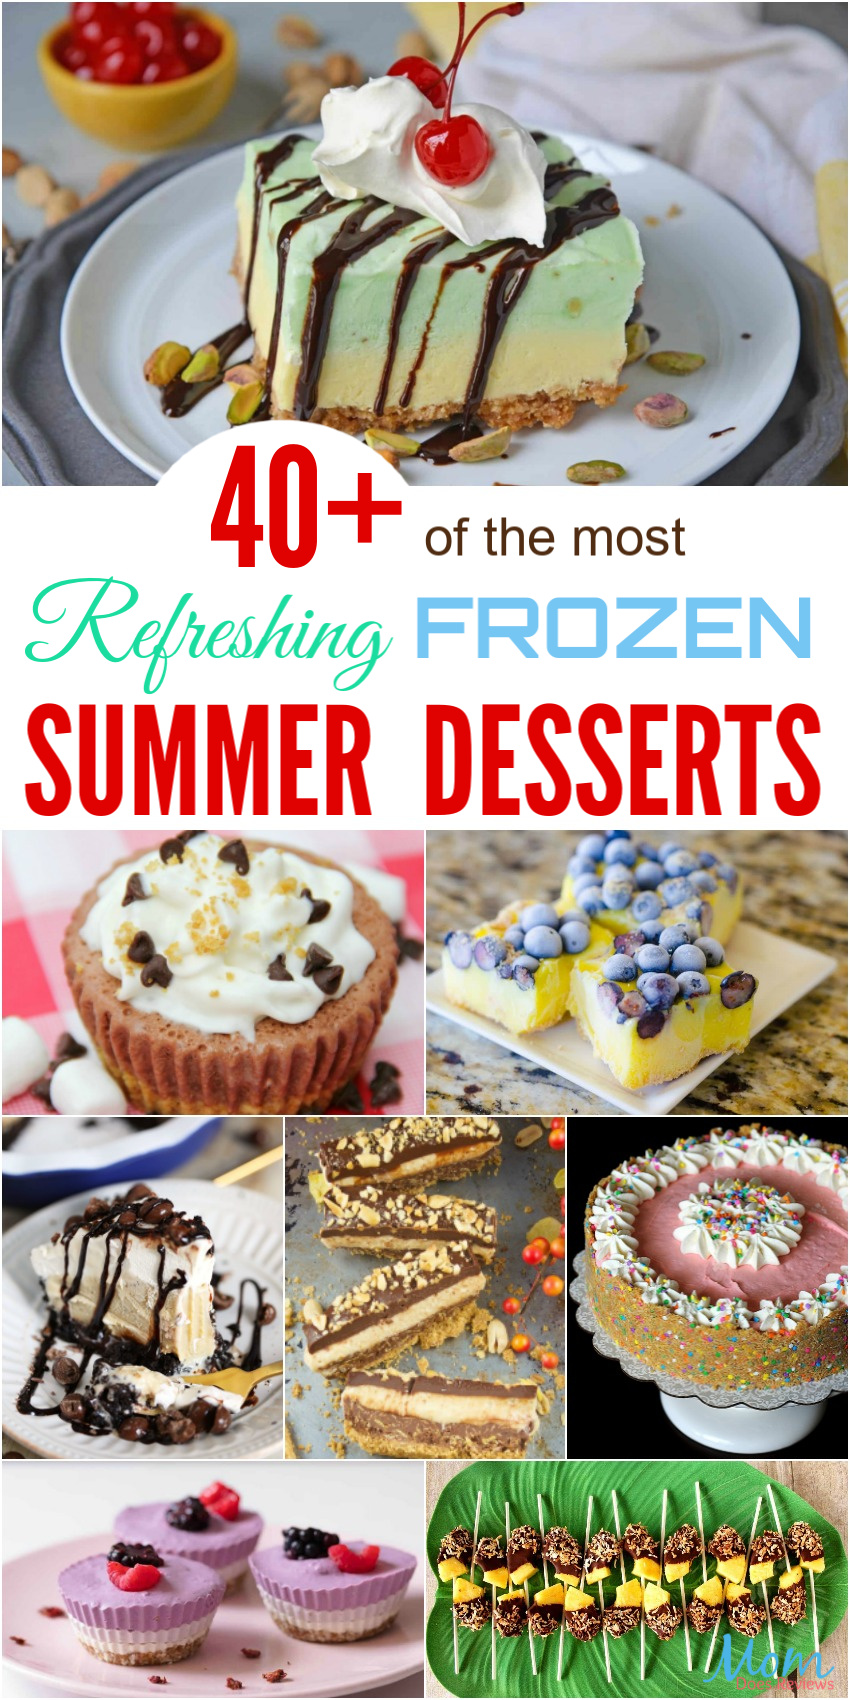 40+ of the most Refreshing Frozen Summer Desserts to Enjoy this Summer #recipes #desserts #funfood